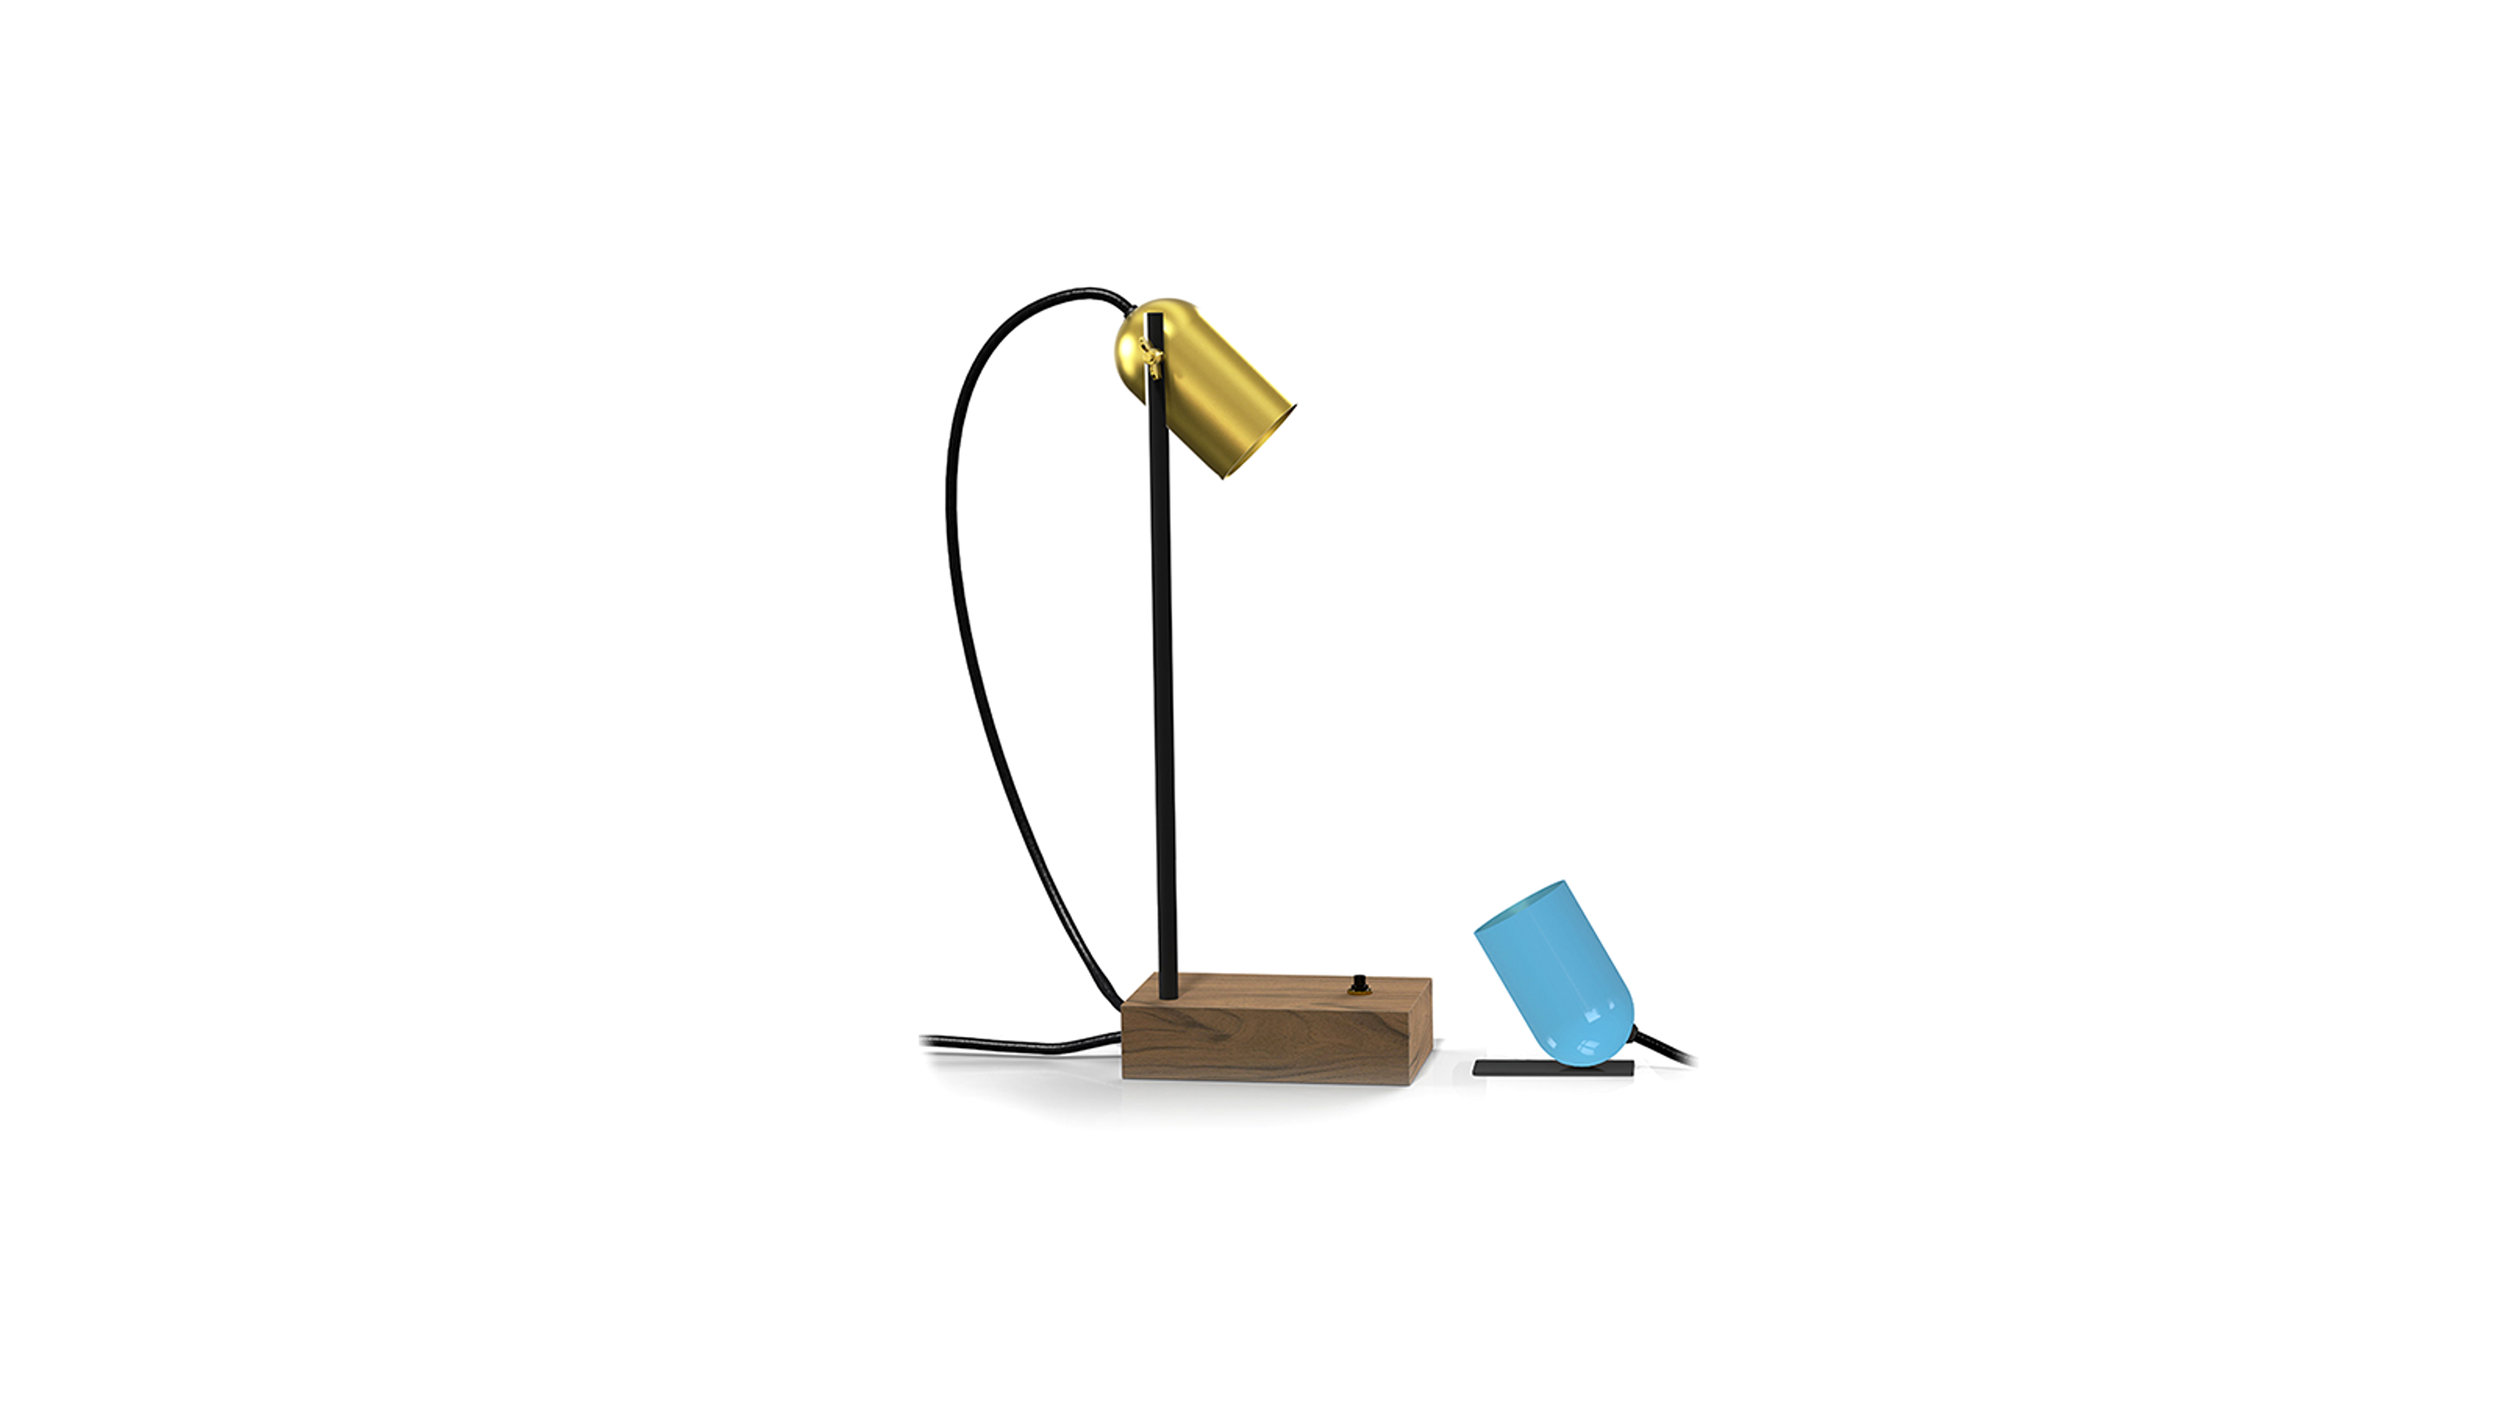 James-Plant-Design-Studio-Polka-Desk-Lamp-and-mouse.jpg